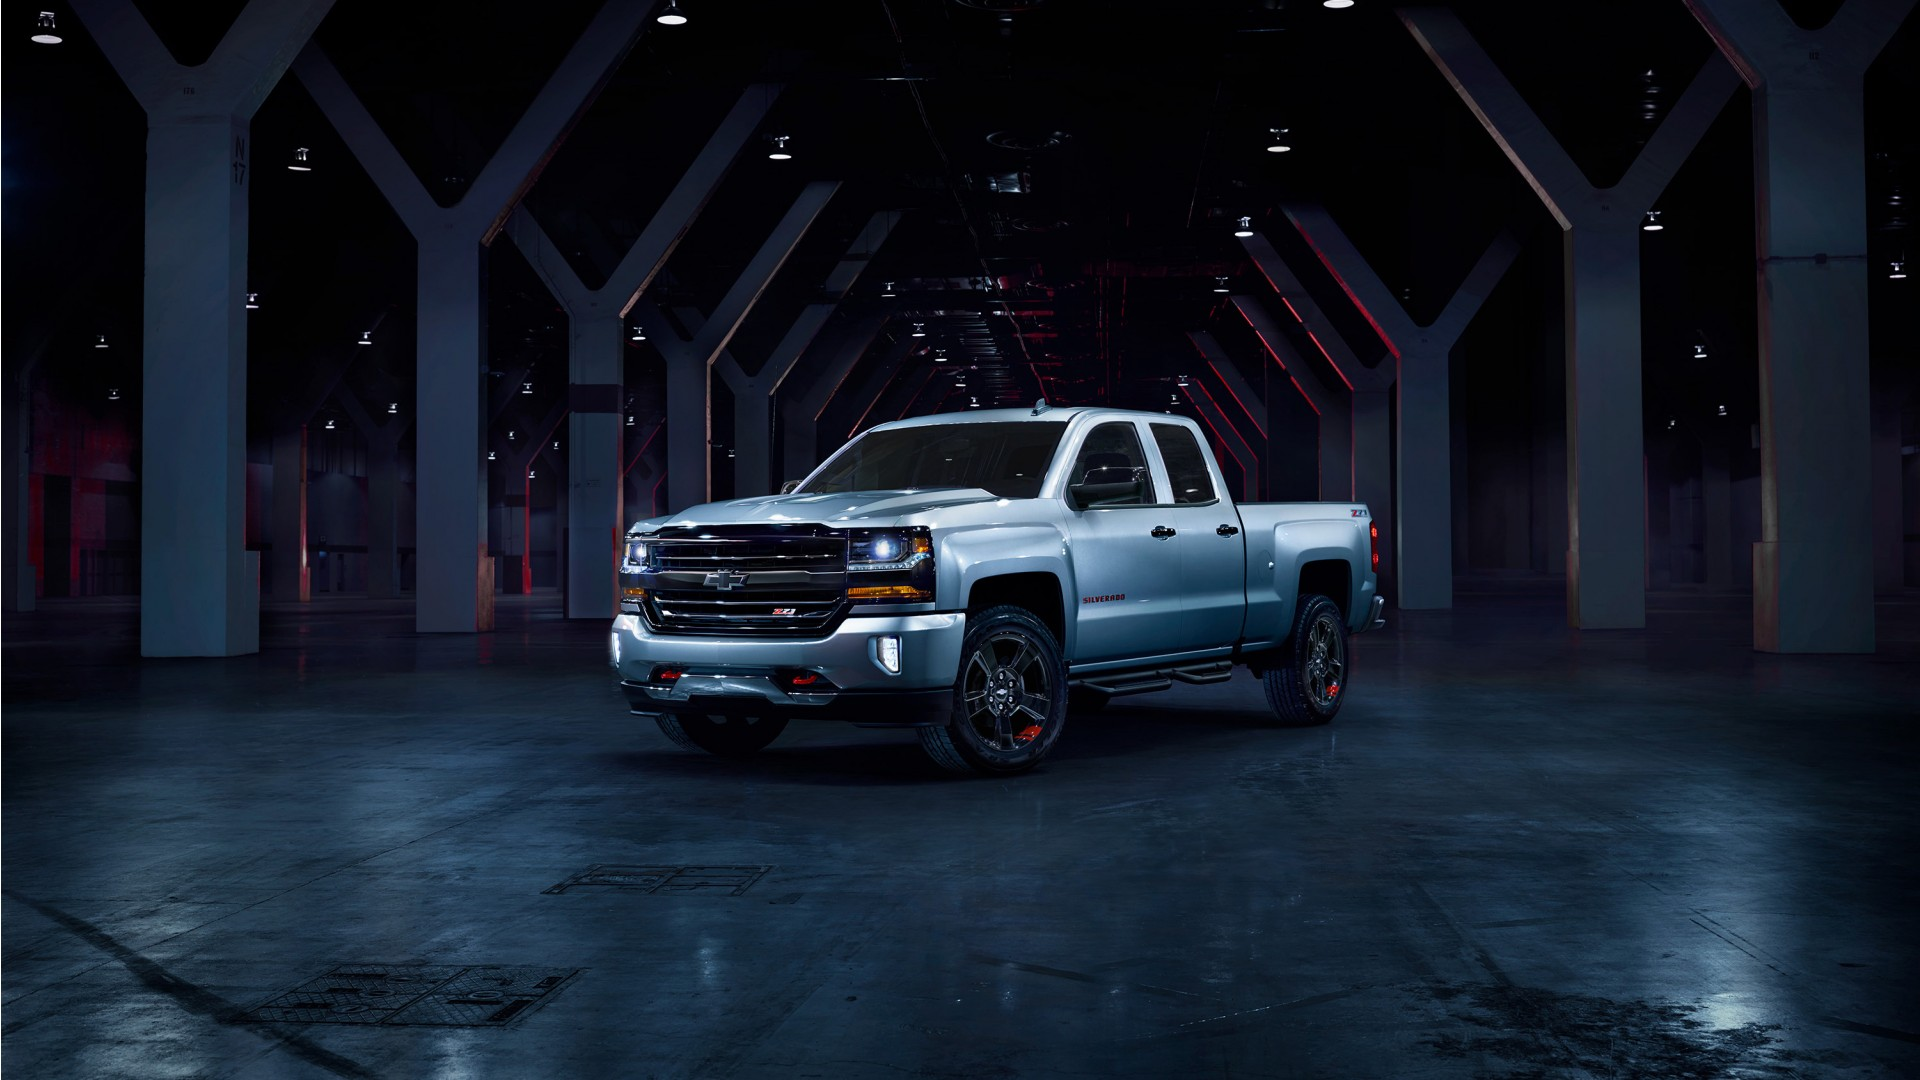 2017 Chevrolet Silverado Redline Edition Wallpaper Hd